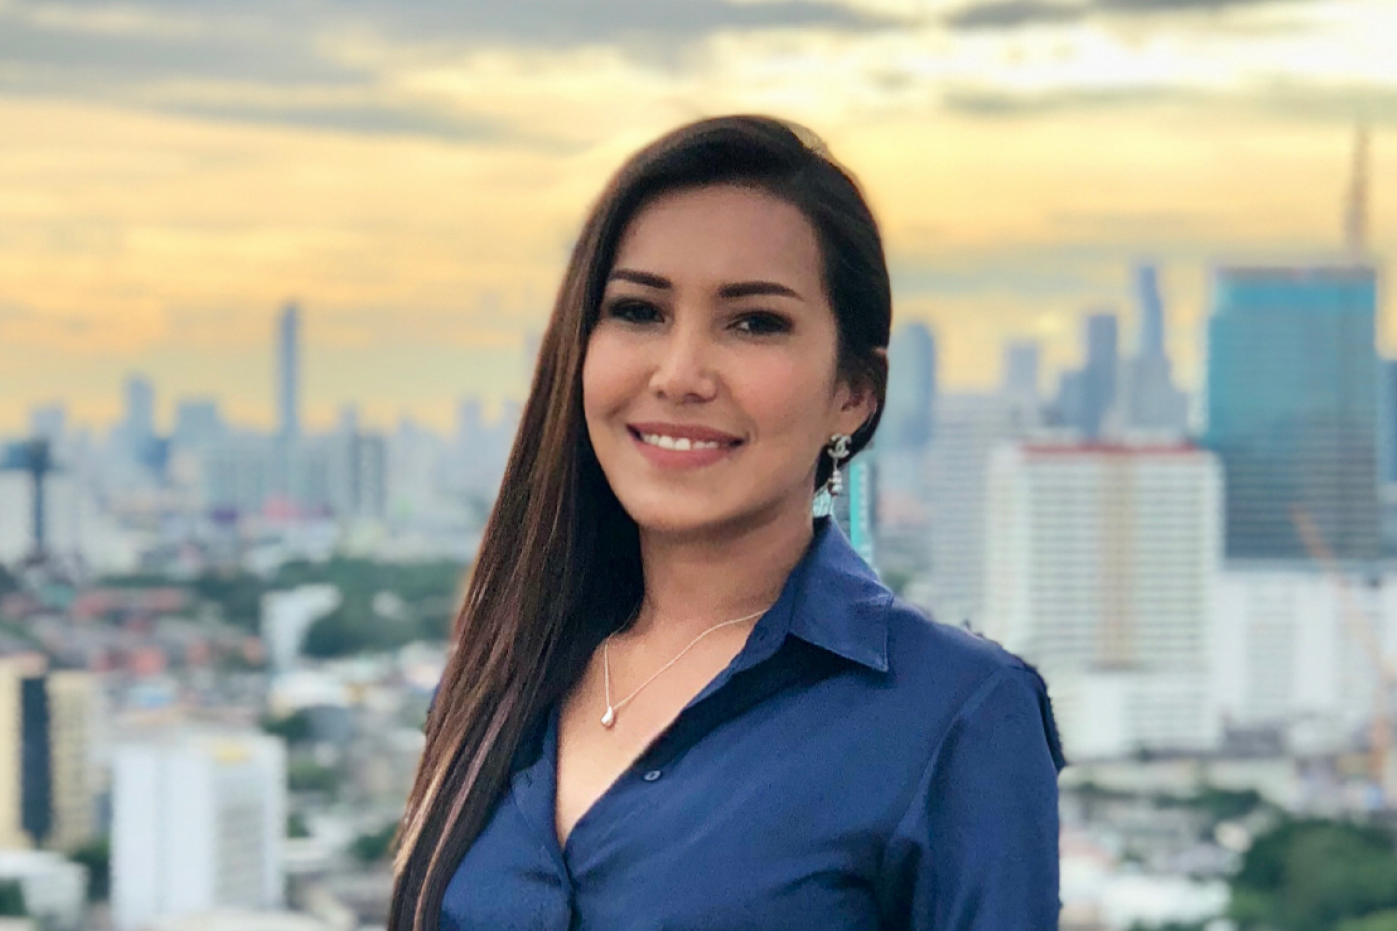 With our offices split across the UK and Bangkok, we thought it would be a good idea to sit down with our Managing Director in Thailand, Patty, to talk about what it is like working for in tech and keep the good ship MOHARA on track.